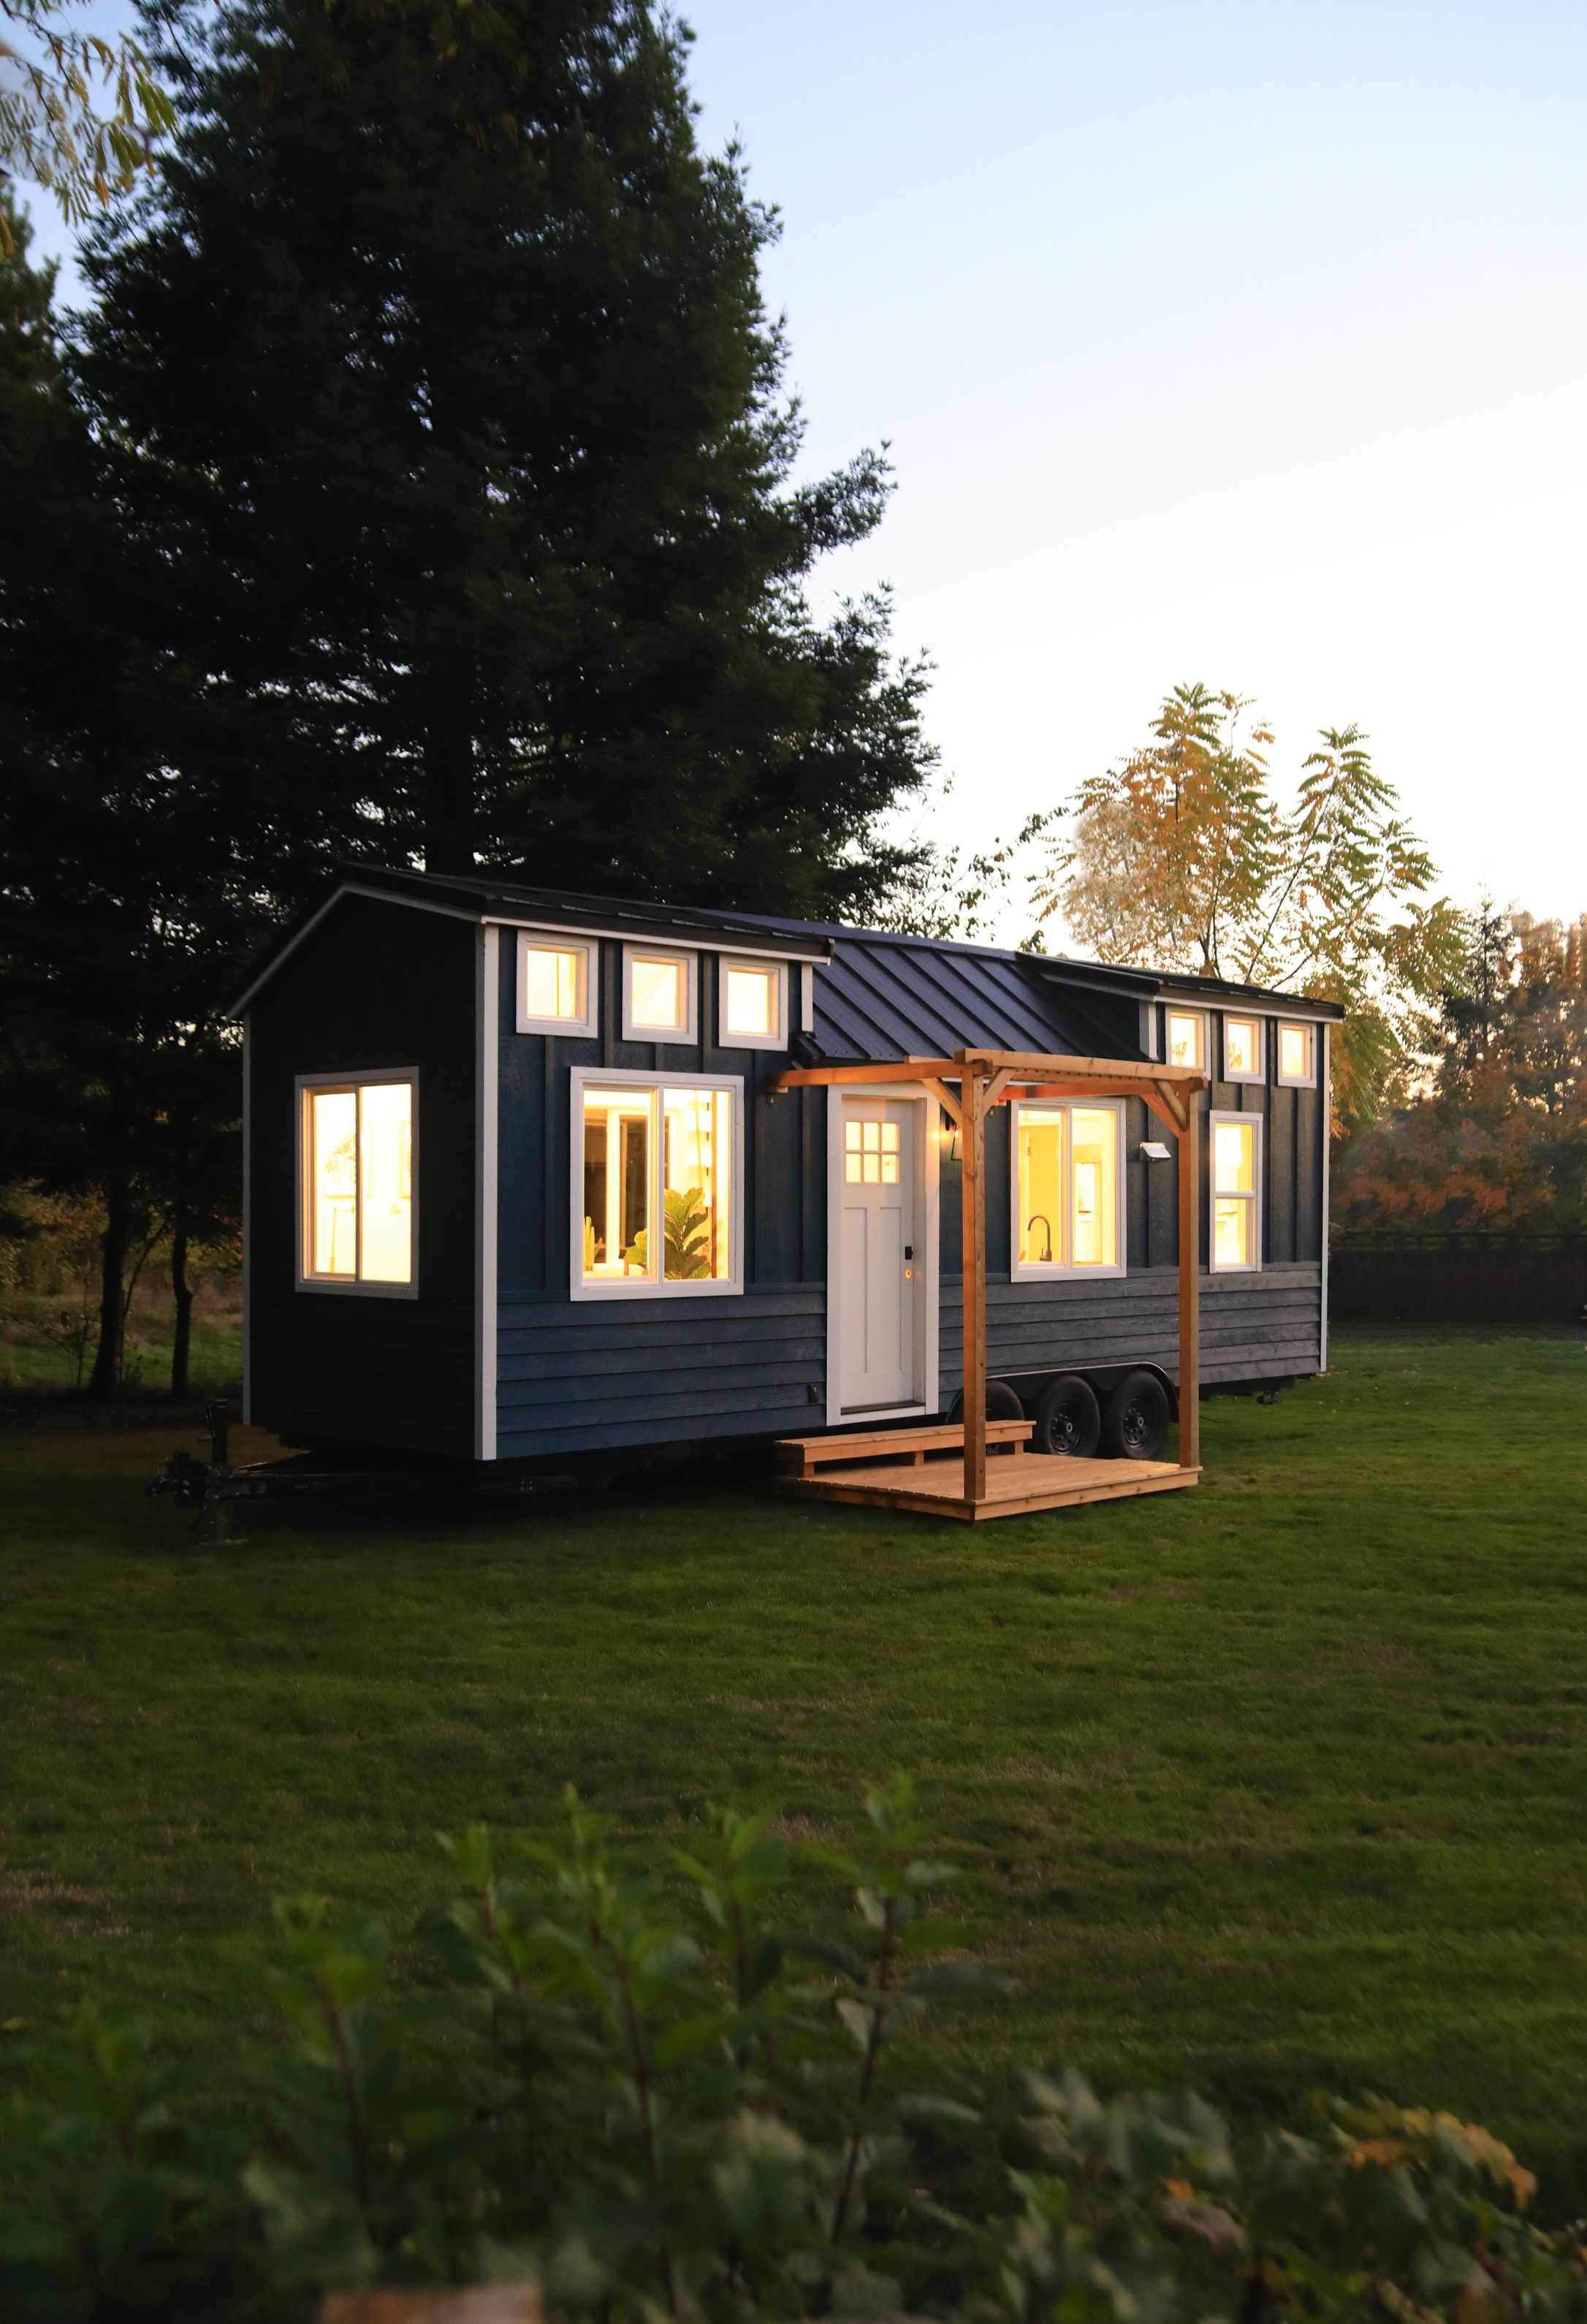 Cadence Tiny Home by Handcrafted Movement